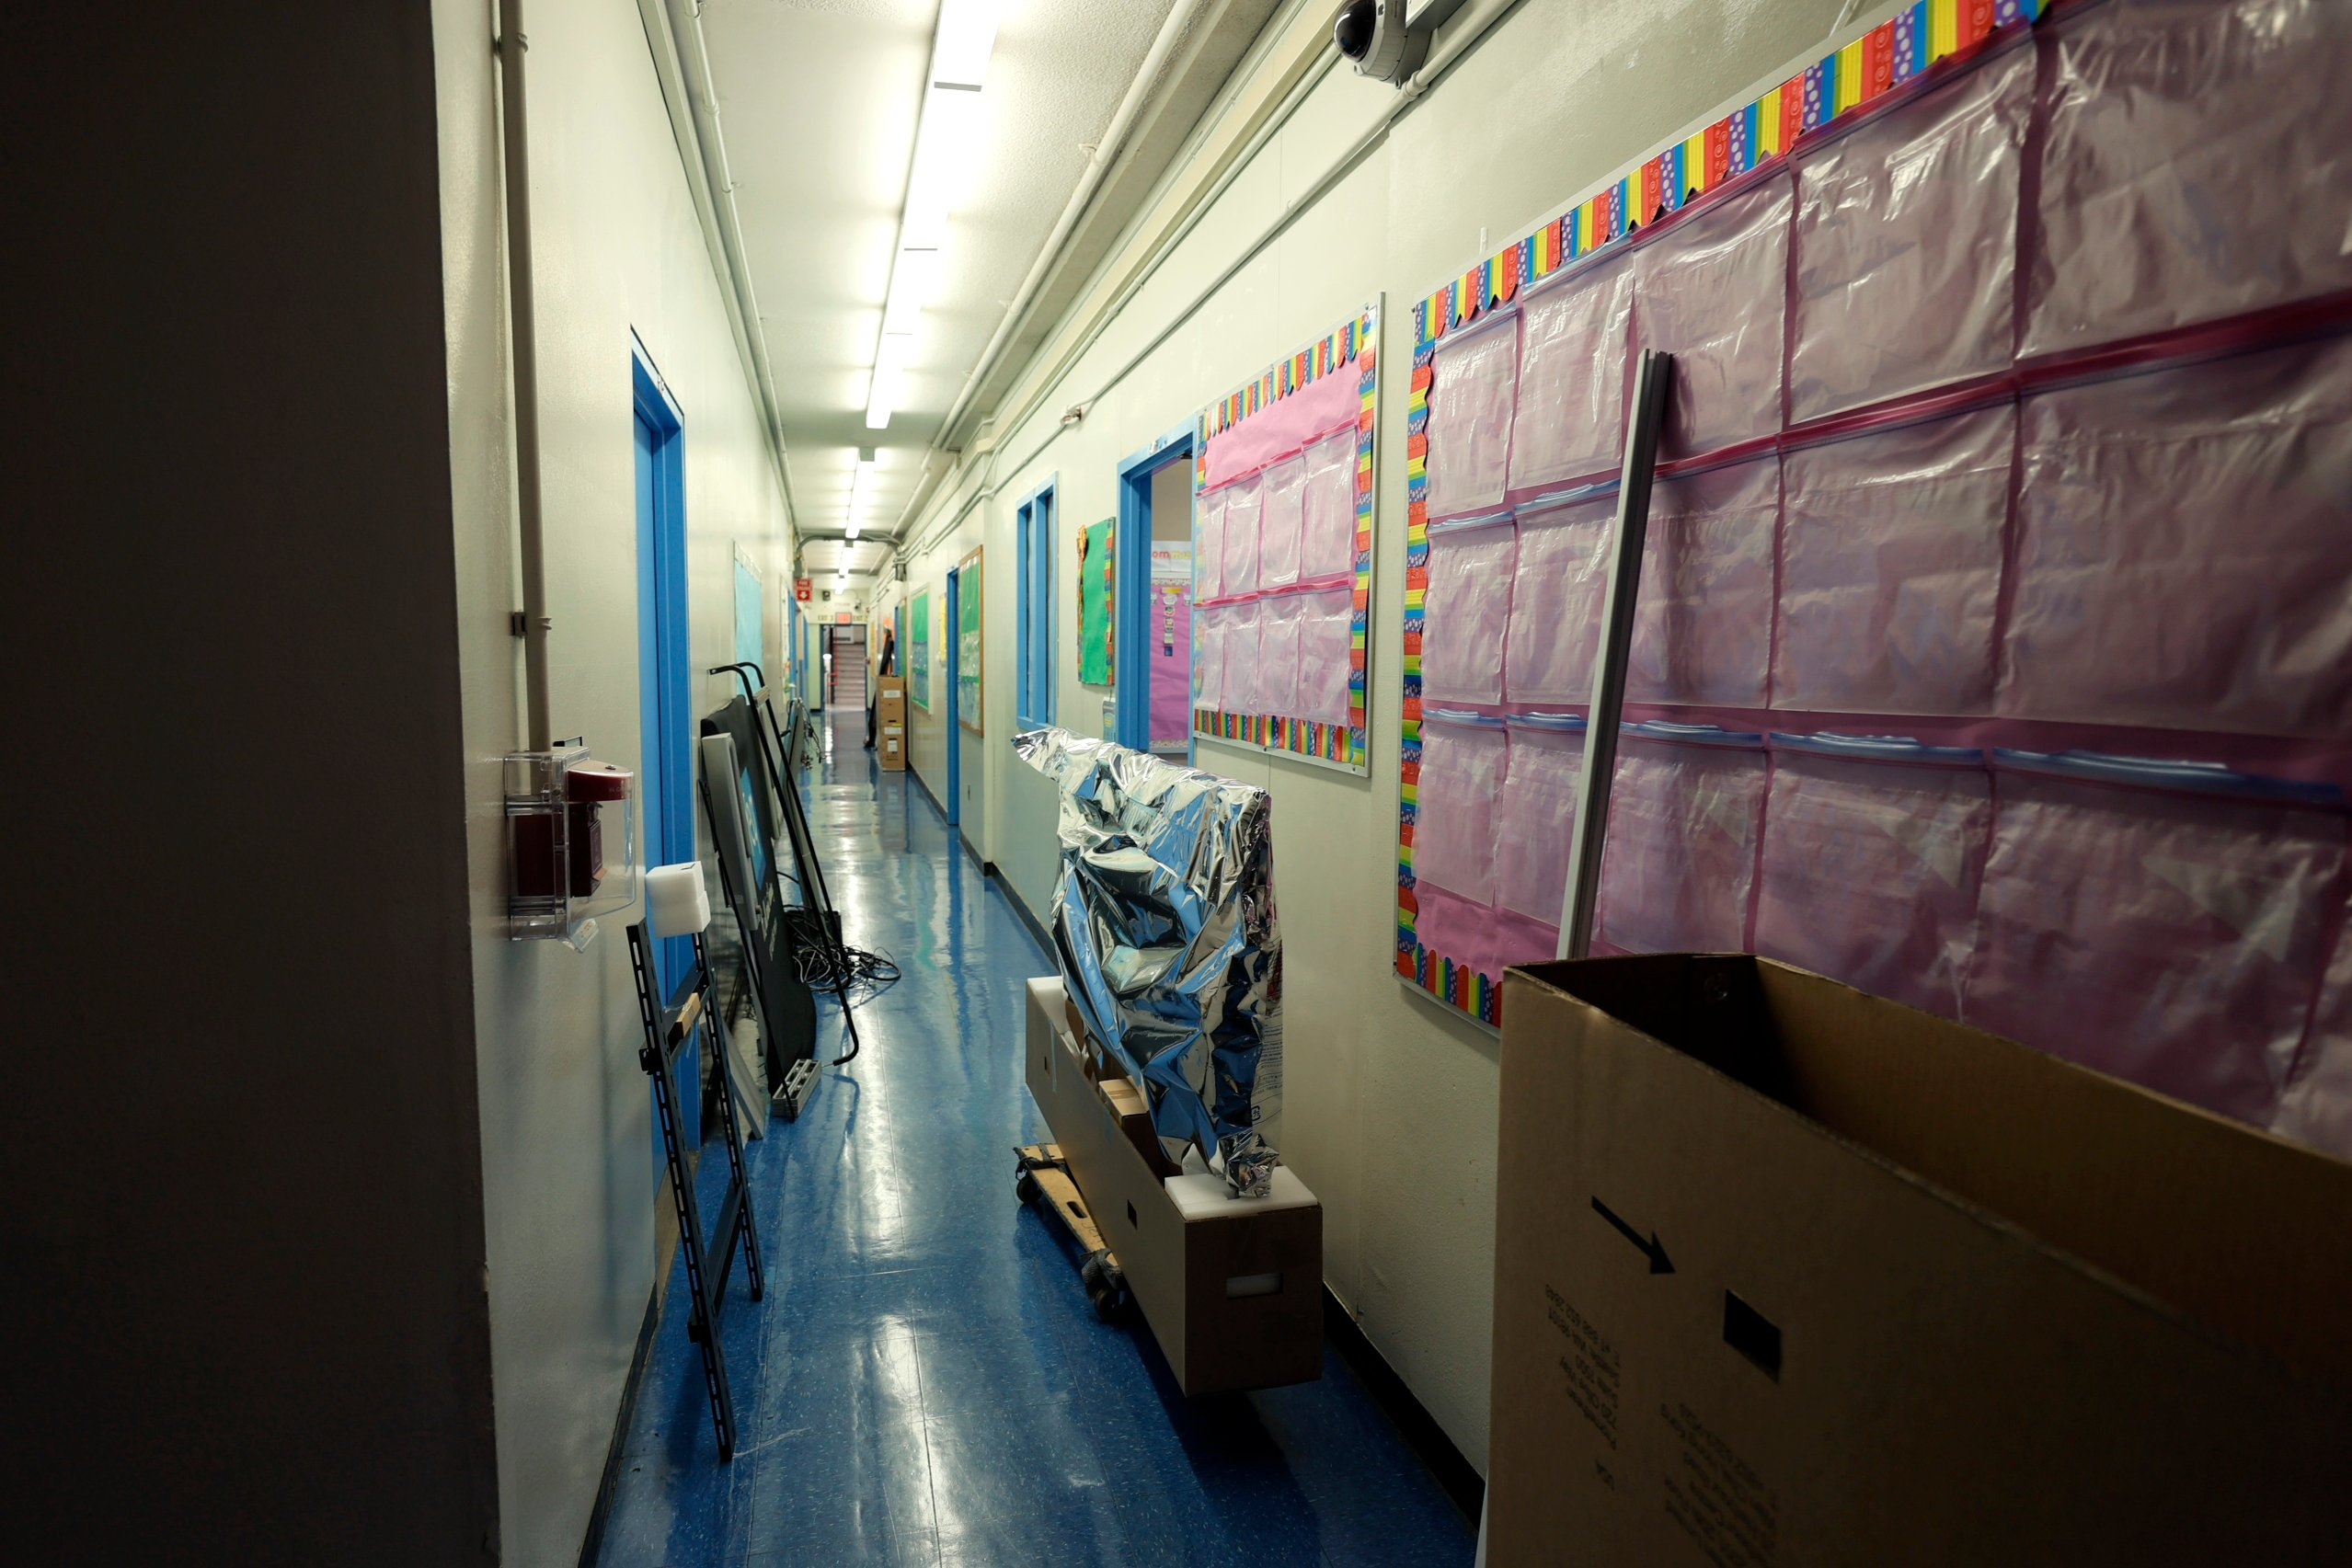 A hallway at Yung Wing School P.S. 124 is filled with classroom items for the start of the school year on September 02, 2021 in New York City. (Photo by Michael Loccisano/Getty Images)